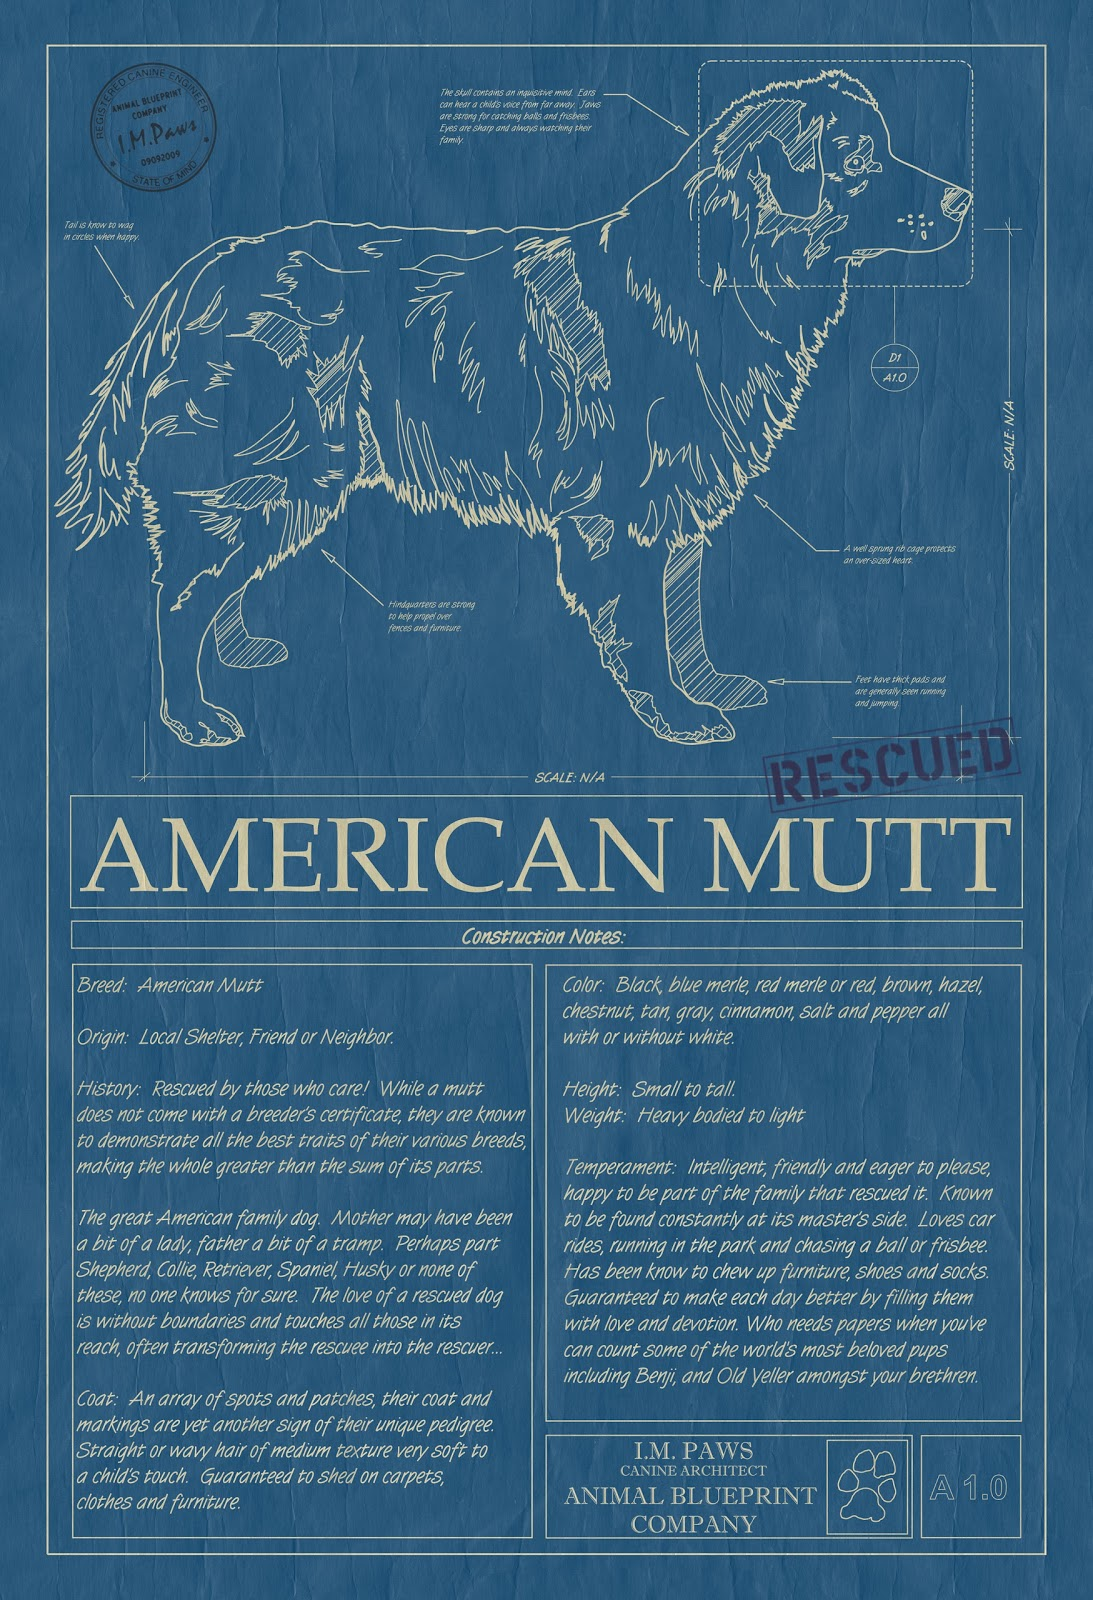 To you animal blueprint company adds rescued mutts cats art animal blueprint company adds rescued mutts cats art malvernweather Choice Image